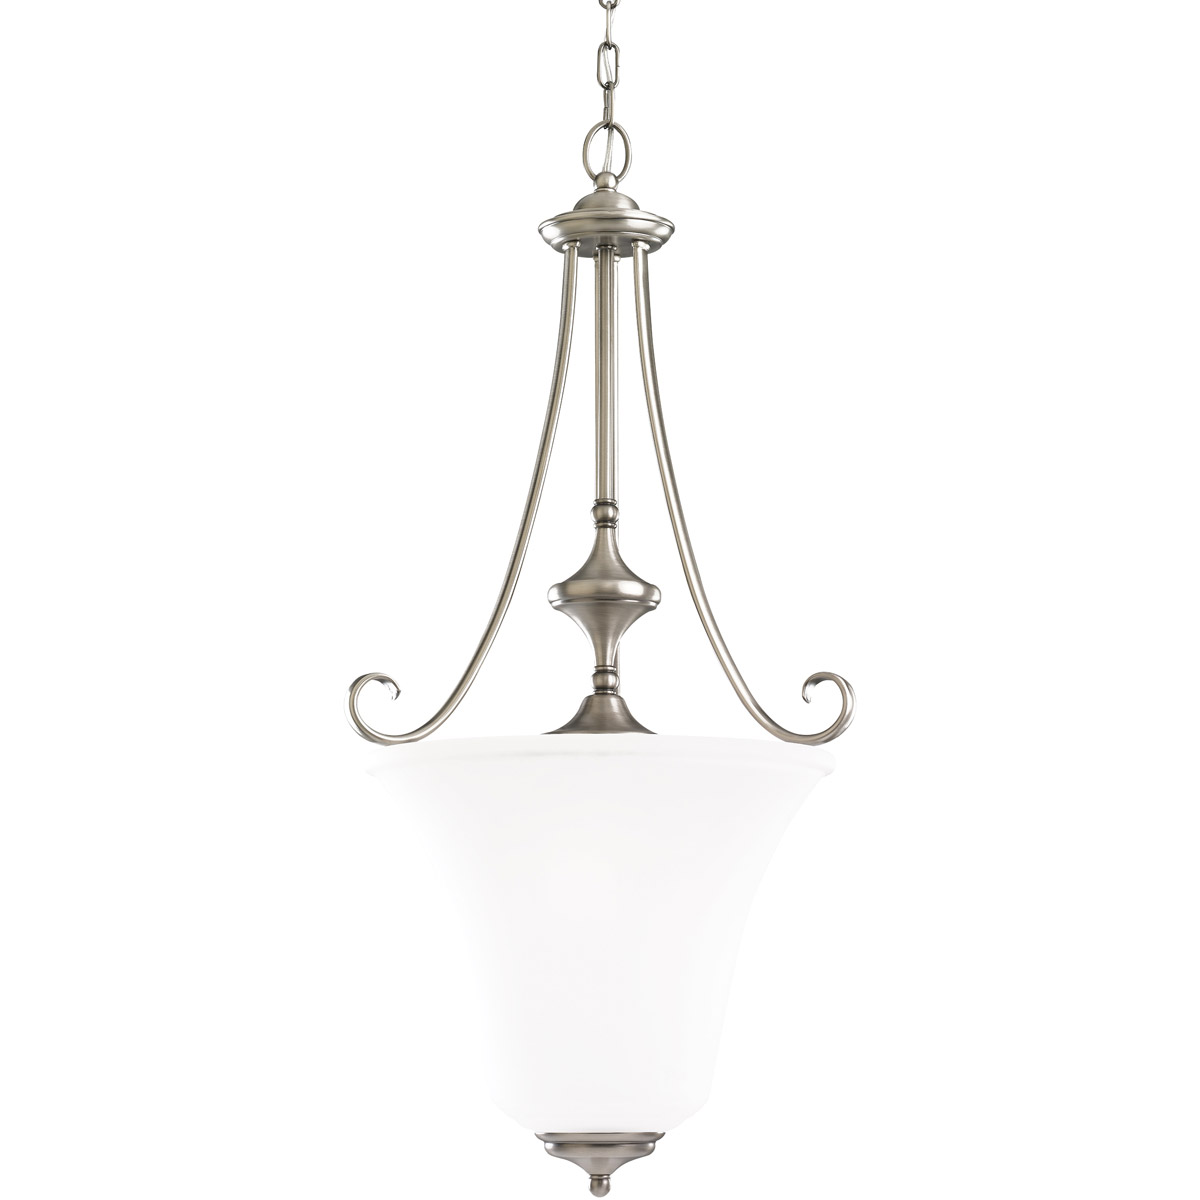 Sea Gull Lighting Parkview 3 Light Foyer Pendant in Antique Brushed Nickel 51380-965